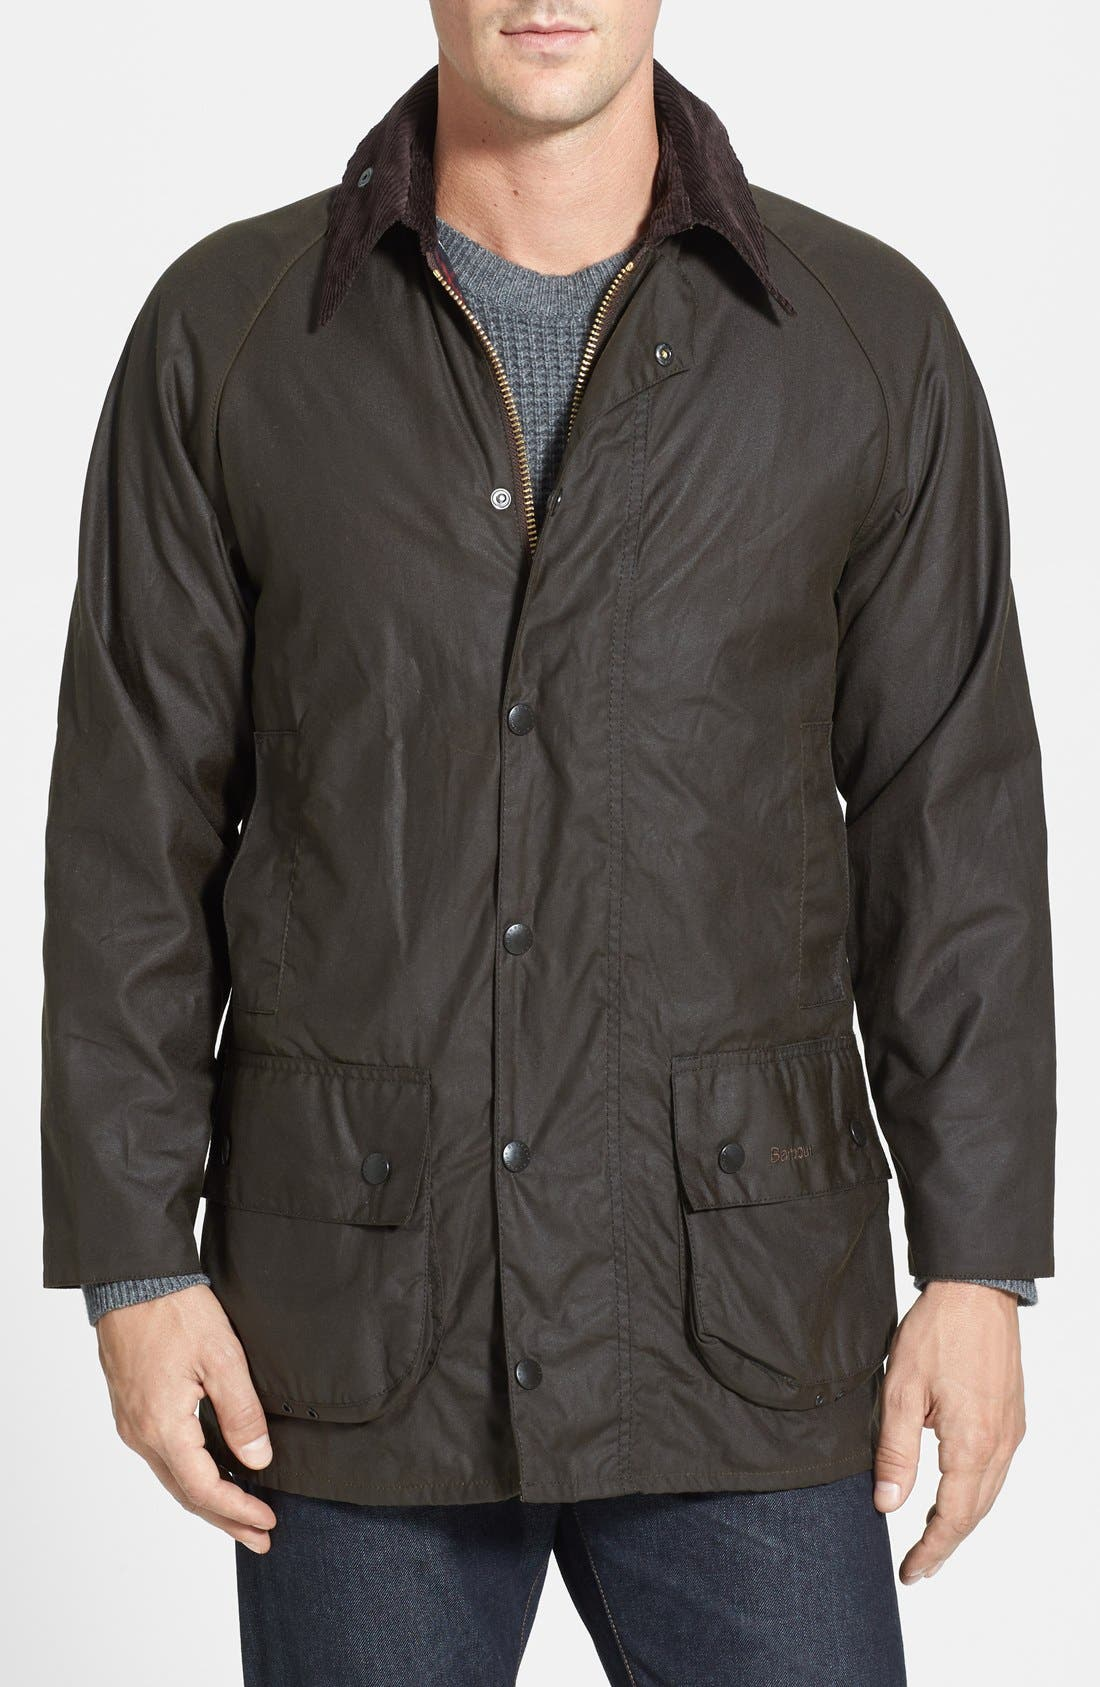 BARBOUR, 'Classic Beaufort' Relaxed Fit Waxed Cotton Jacket, Main thumbnail 1, color, OLIVE